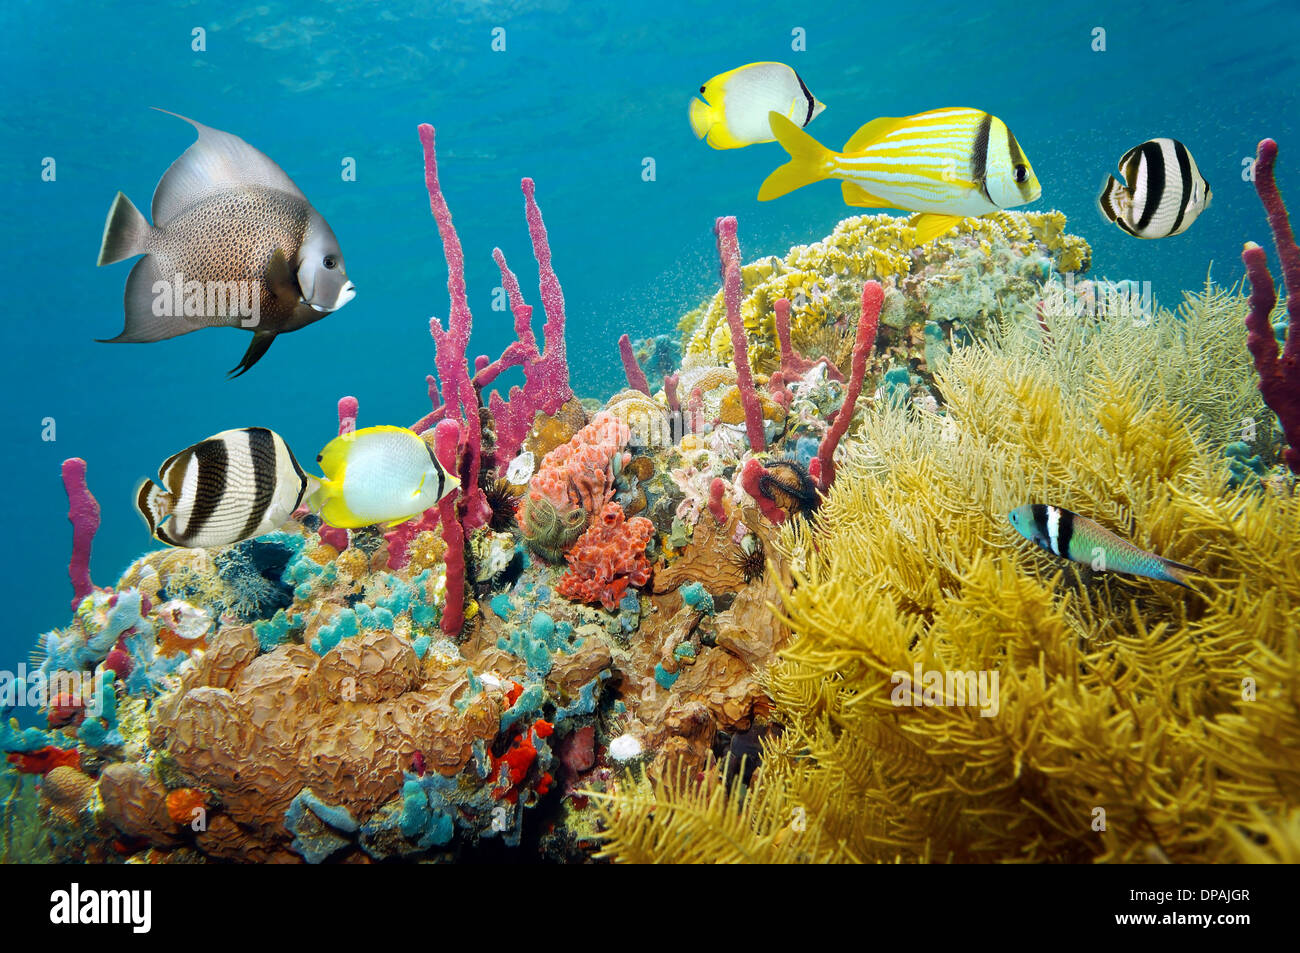 Colored Underwater Marine Life In A Coral Reef With Tropical Fish Caribbean Sea